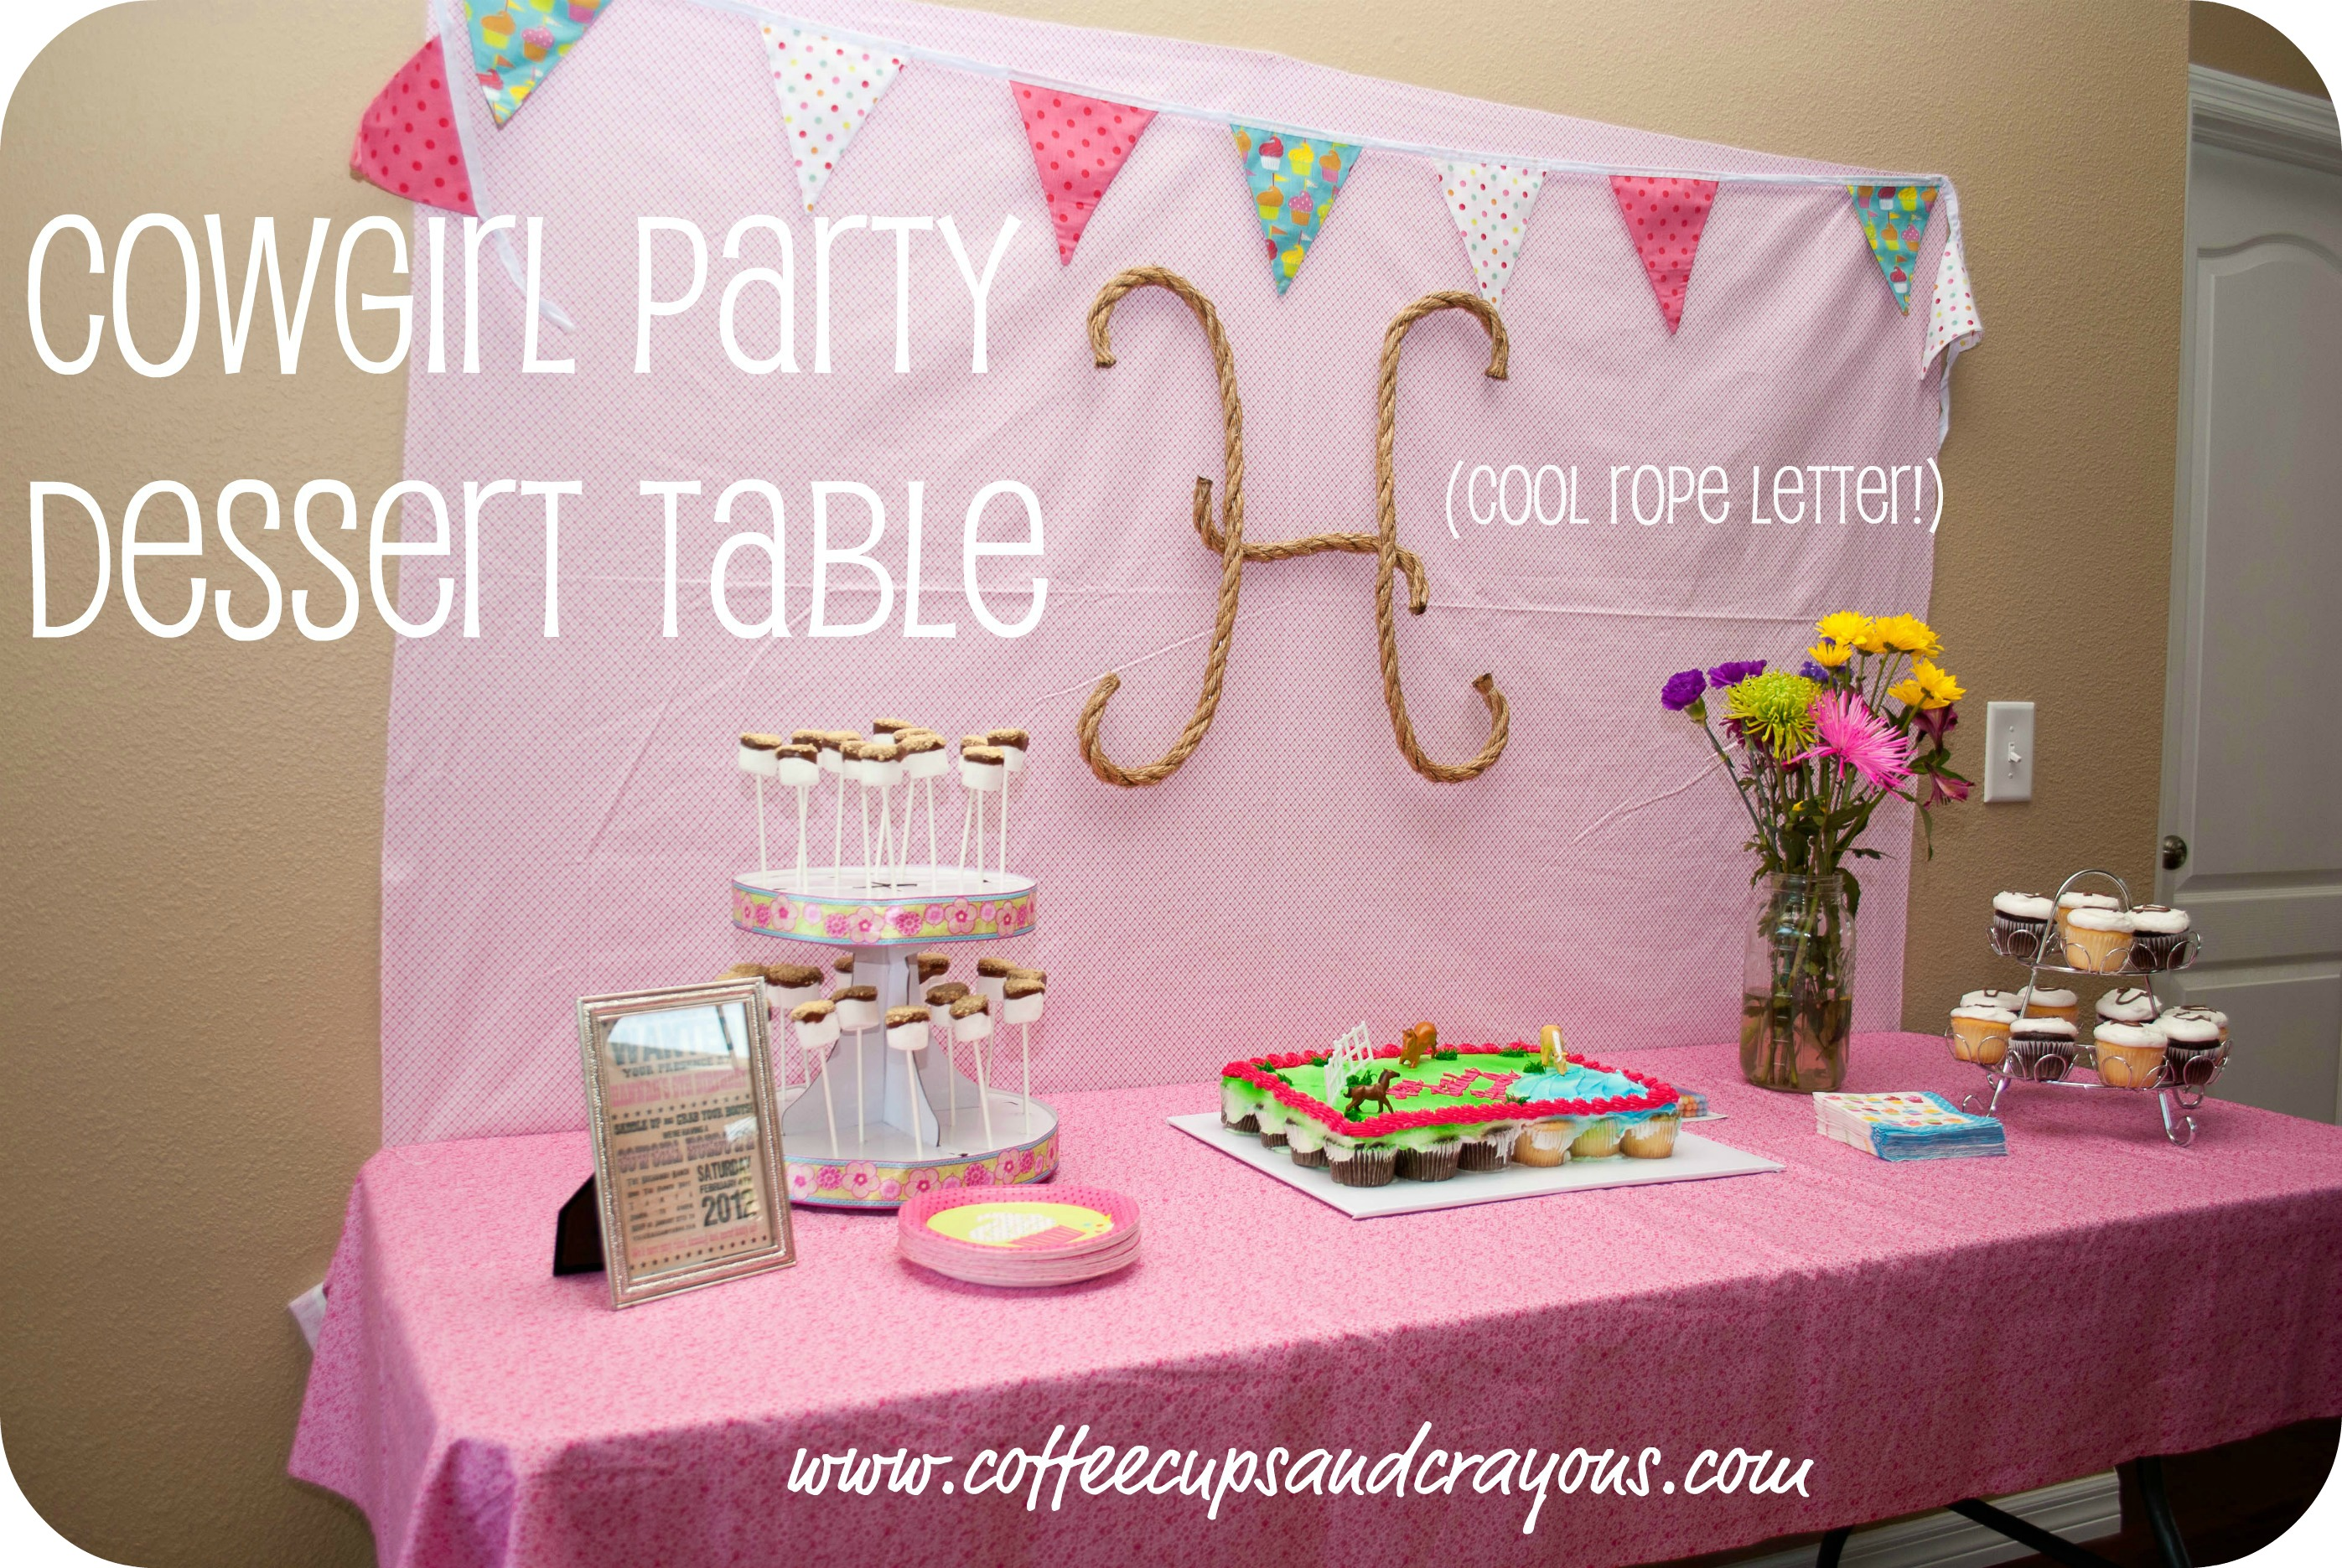 Cowgirl birthday party ideas coffee cups and crayons after filmwisefo